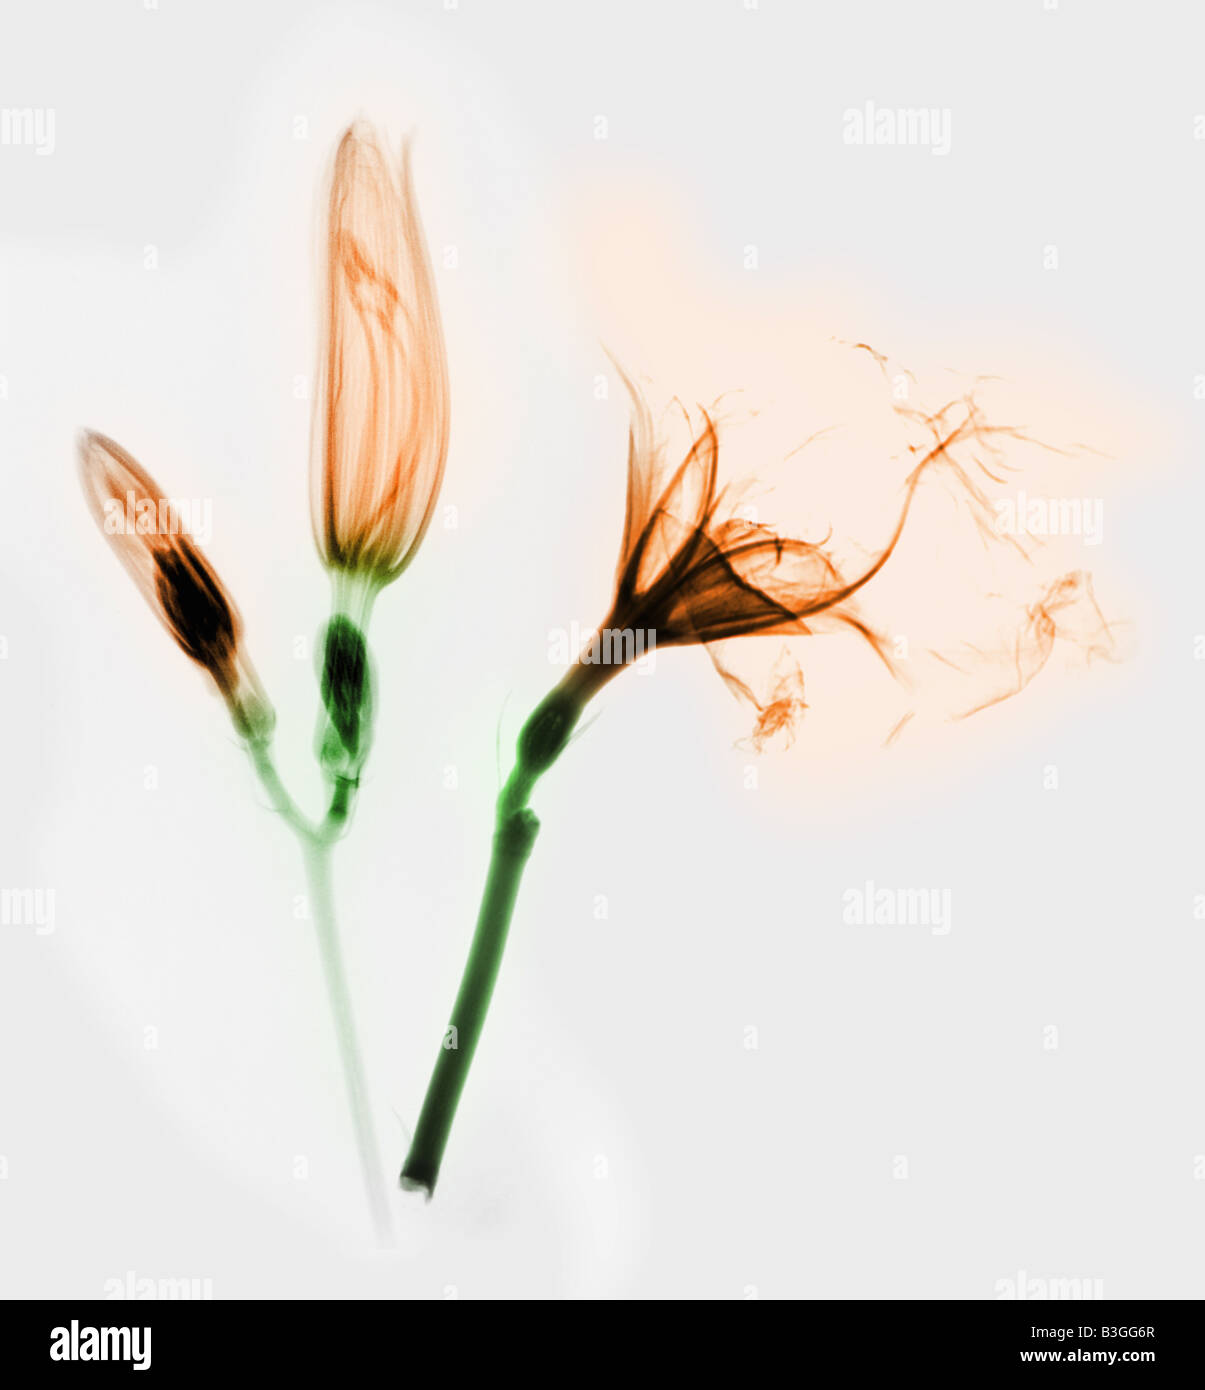 colorized x ray of day lilies - Stock Image